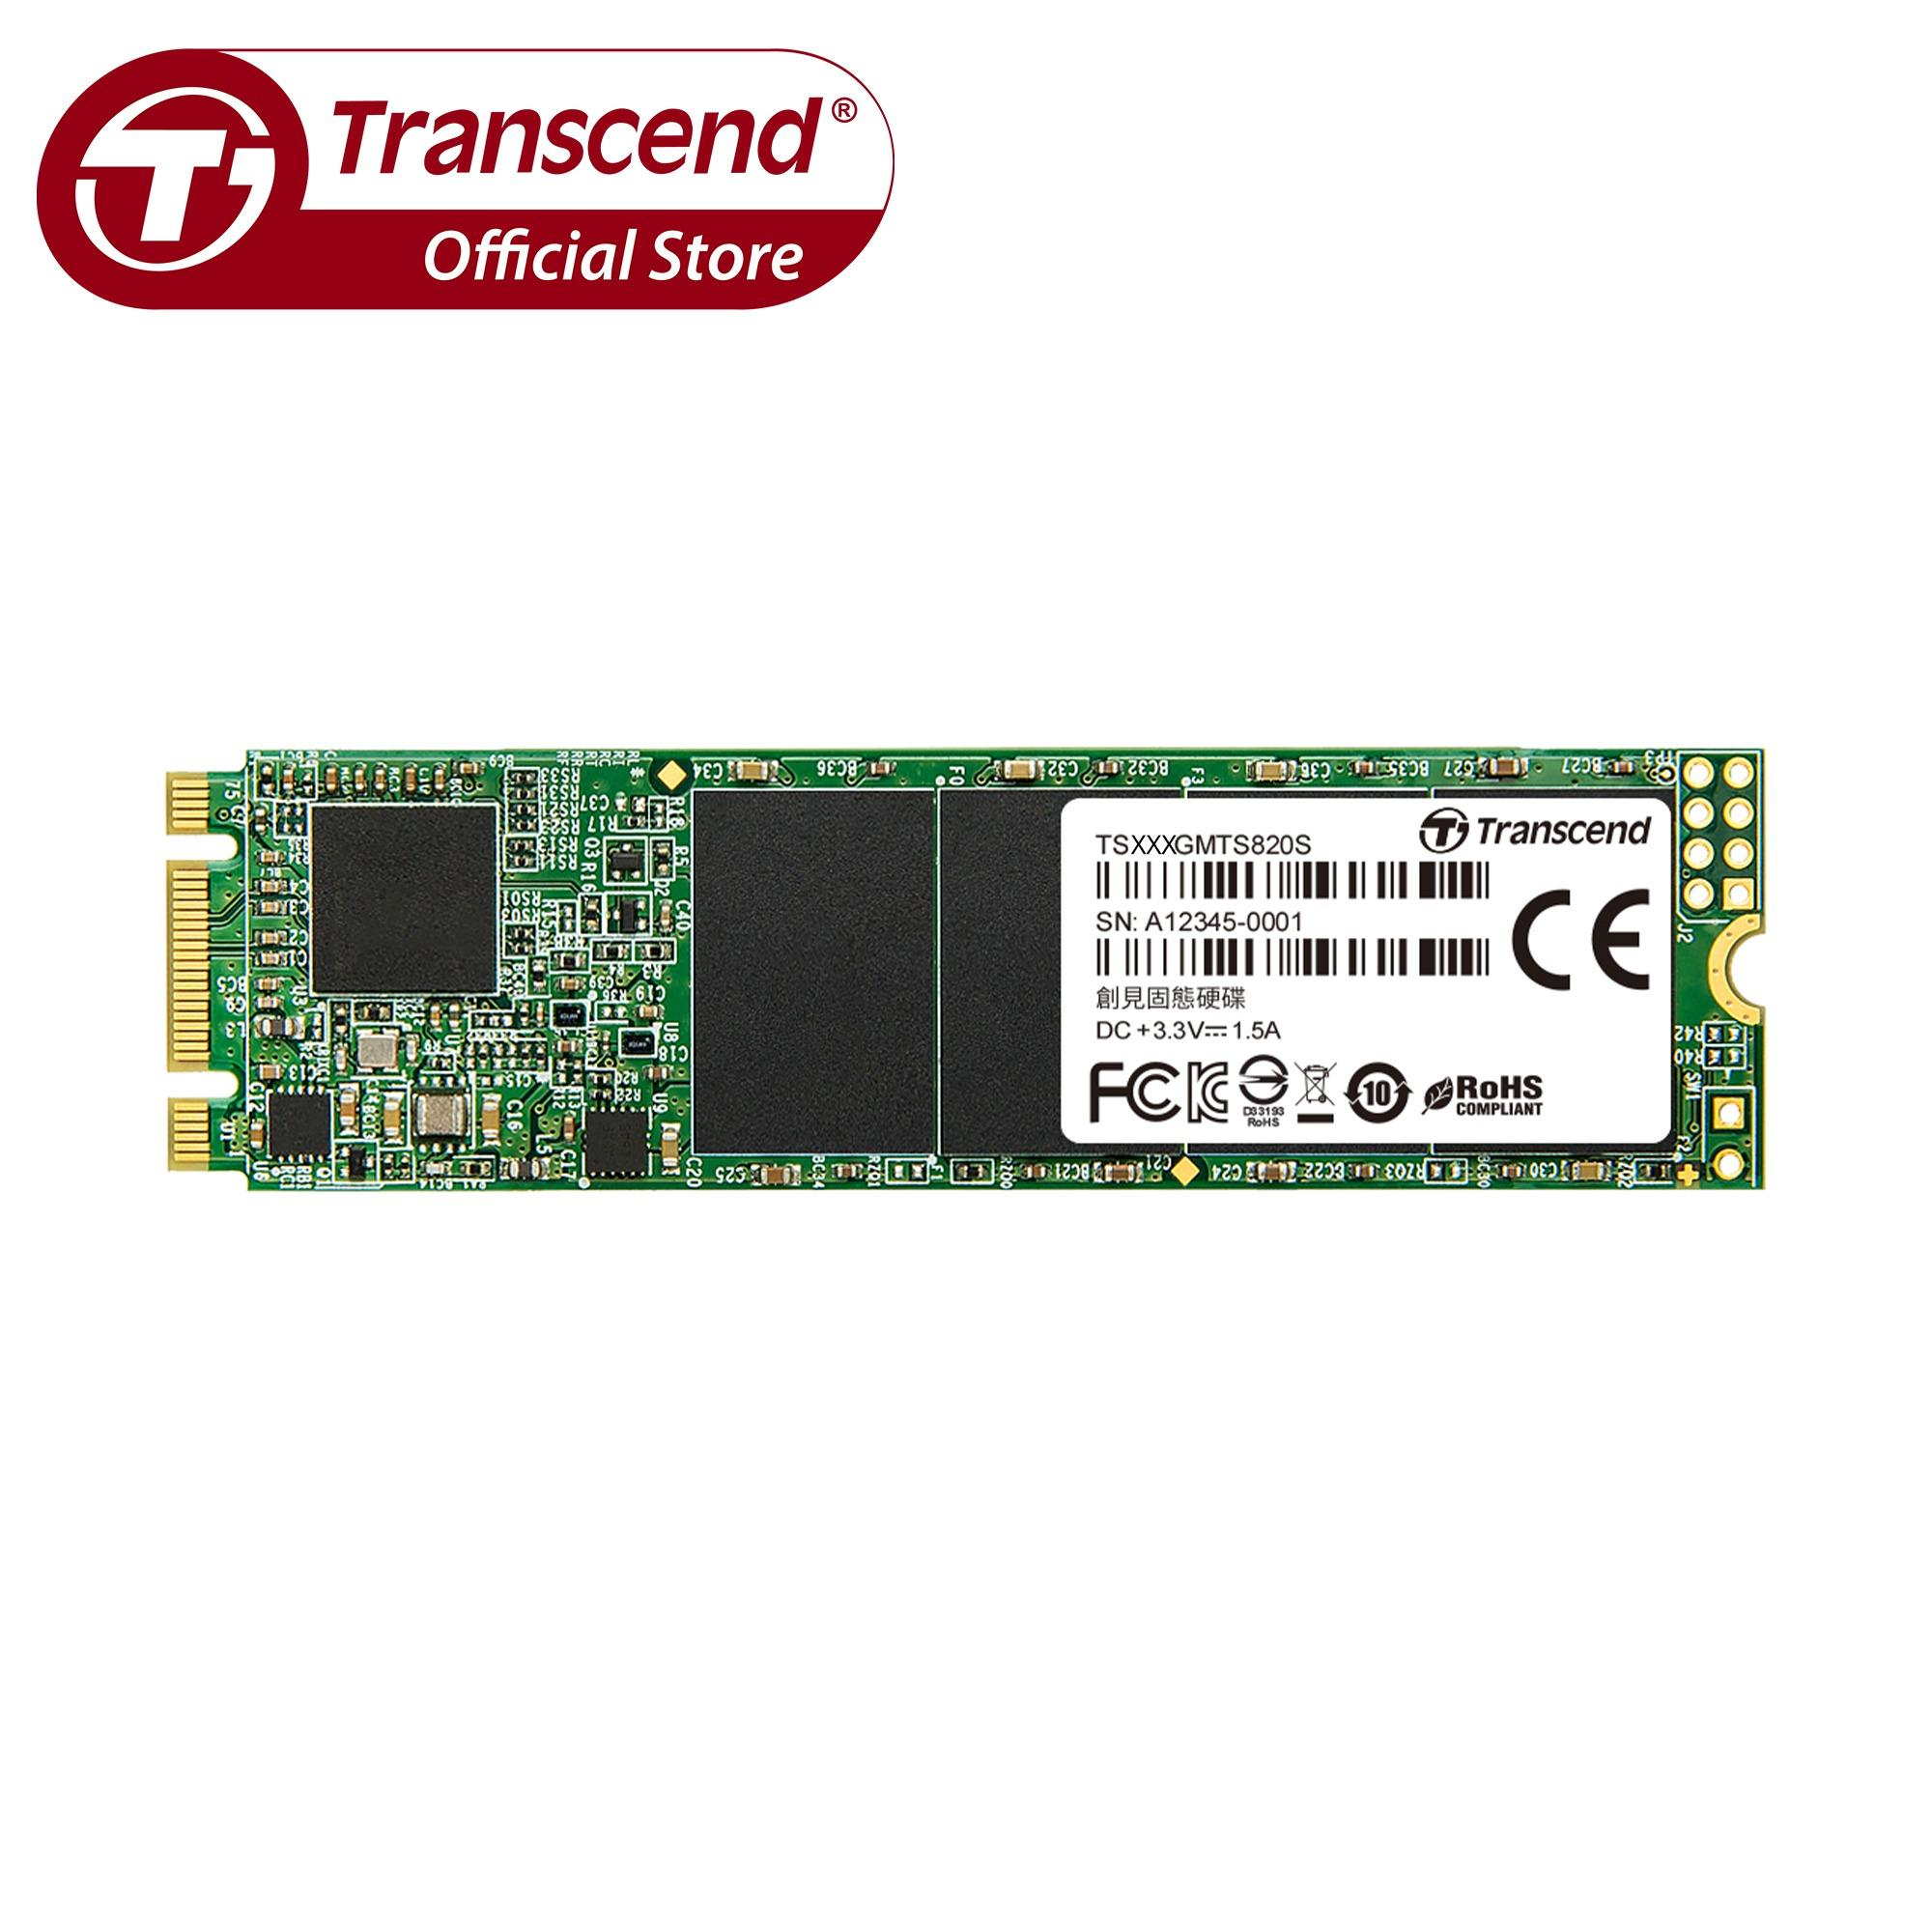 Buy Transcend Mts820 Sata Iii 6Gb S M 2 2280 Ssd Singapore